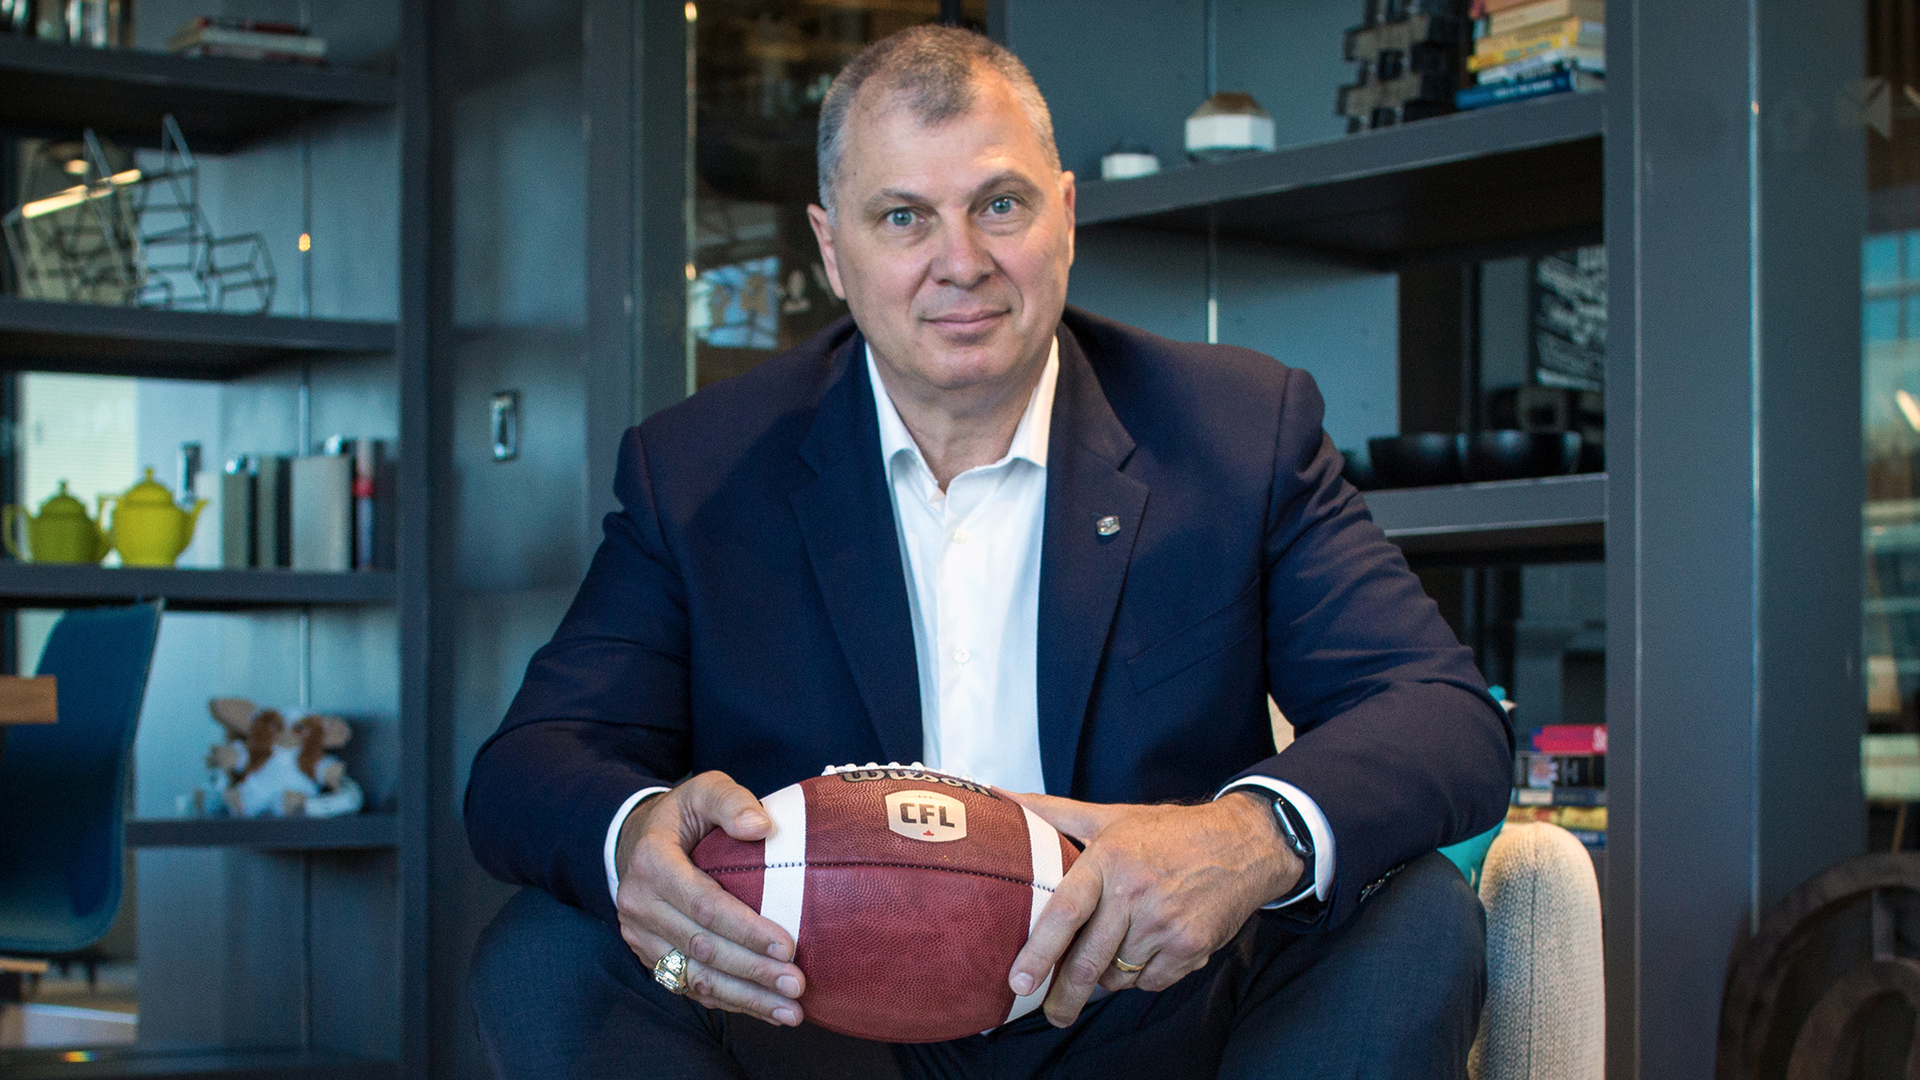 Commissioner Ambrosie speaks on CFL's return to play plan